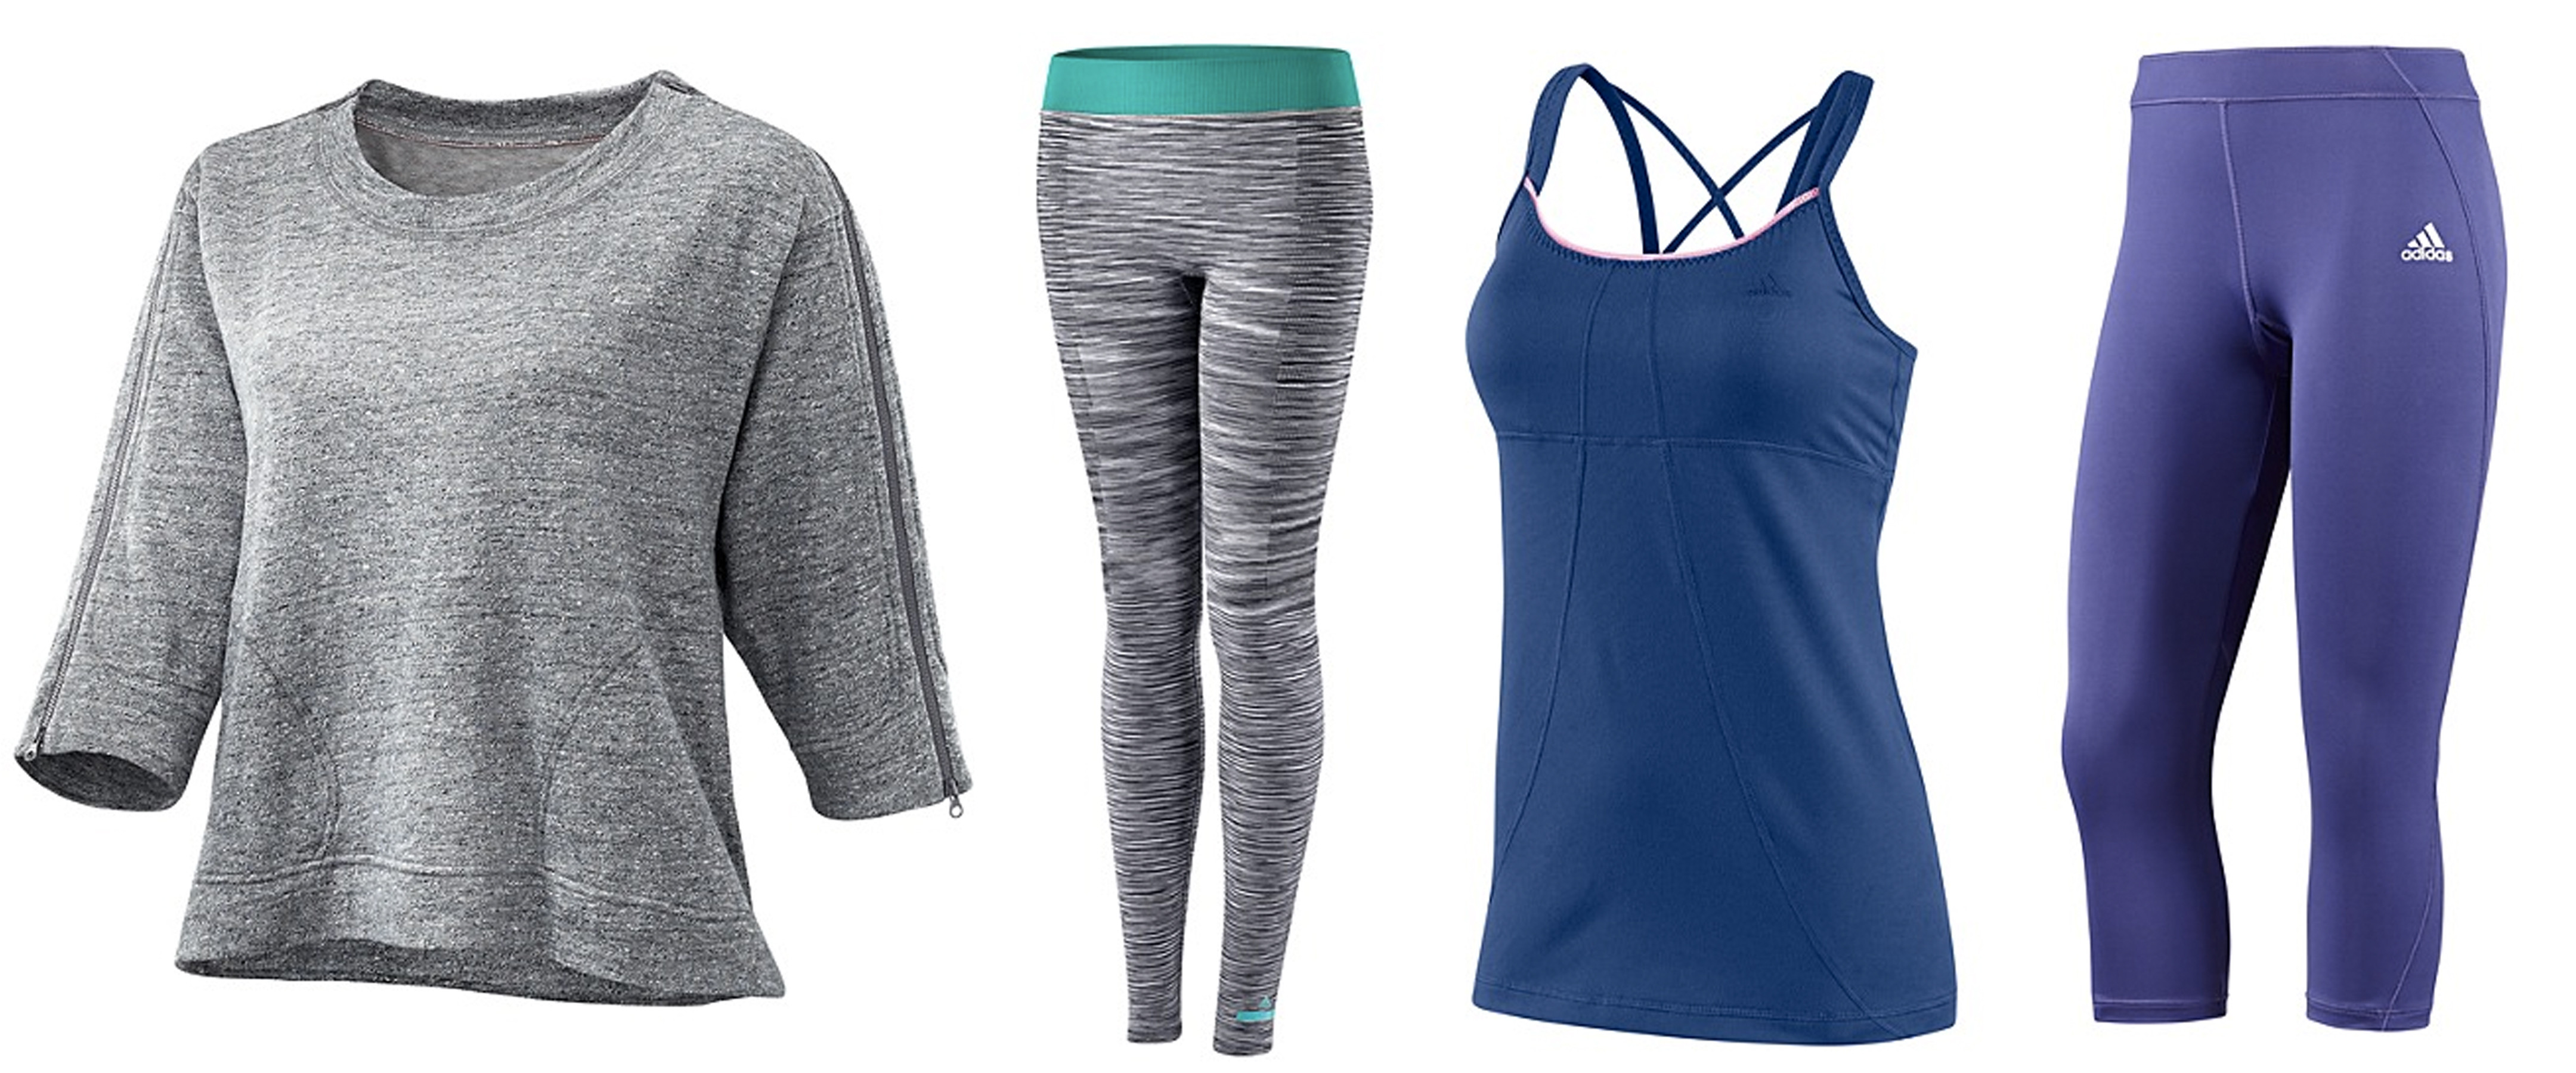 See All Affordable Workout Clothes - Clearance · Women's Go-Dry Ruched Tanks